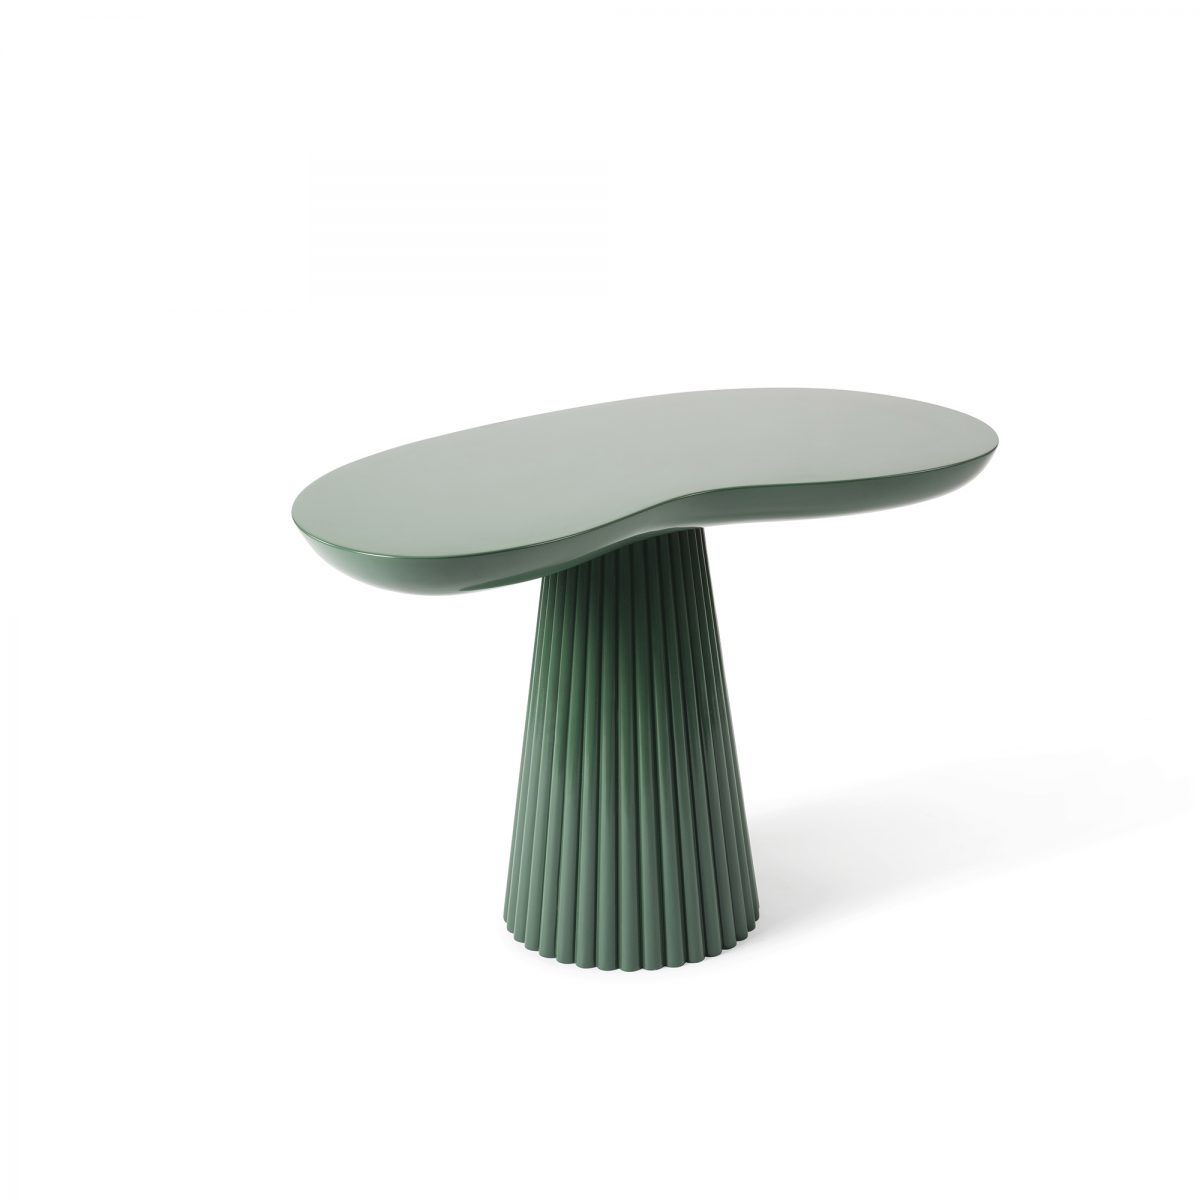 1-mira_tables_side_tables_green